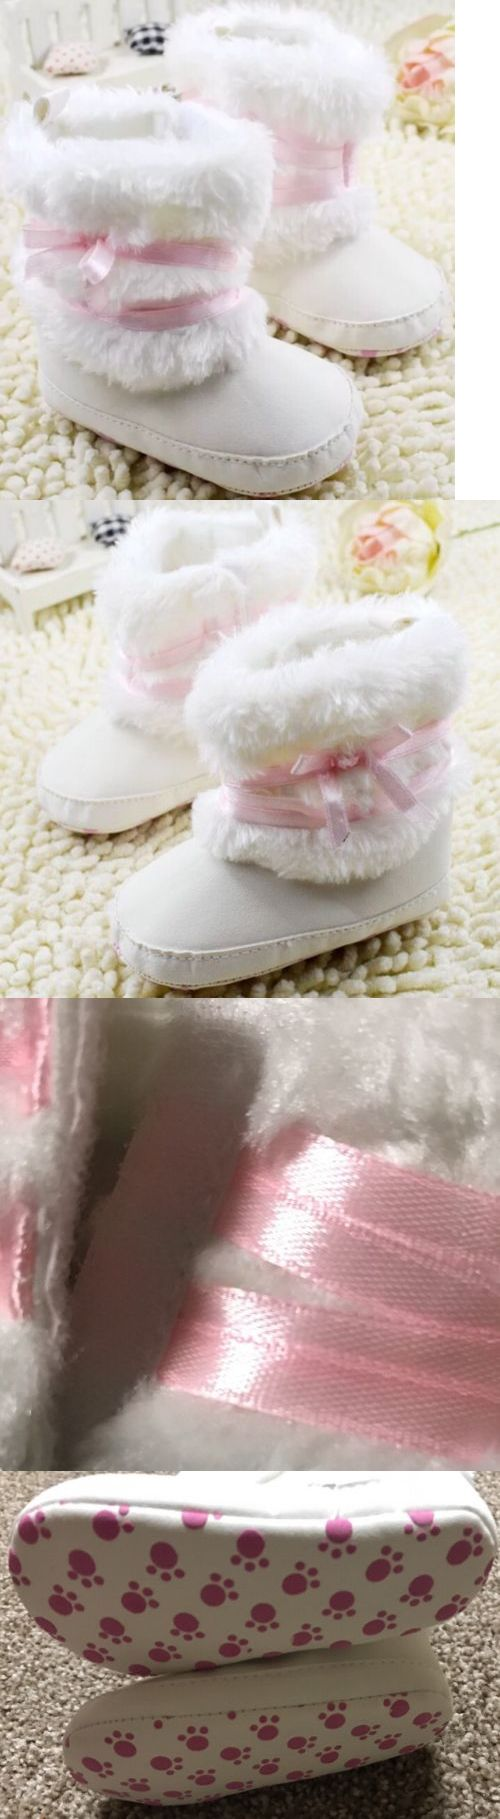 Baby Girls Shoes: Infant Toddler Girls Soft Baby Boots Winter Pink Crib Shoes Newborn 0-6 Month BUY IT NOW ONLY: $12.0